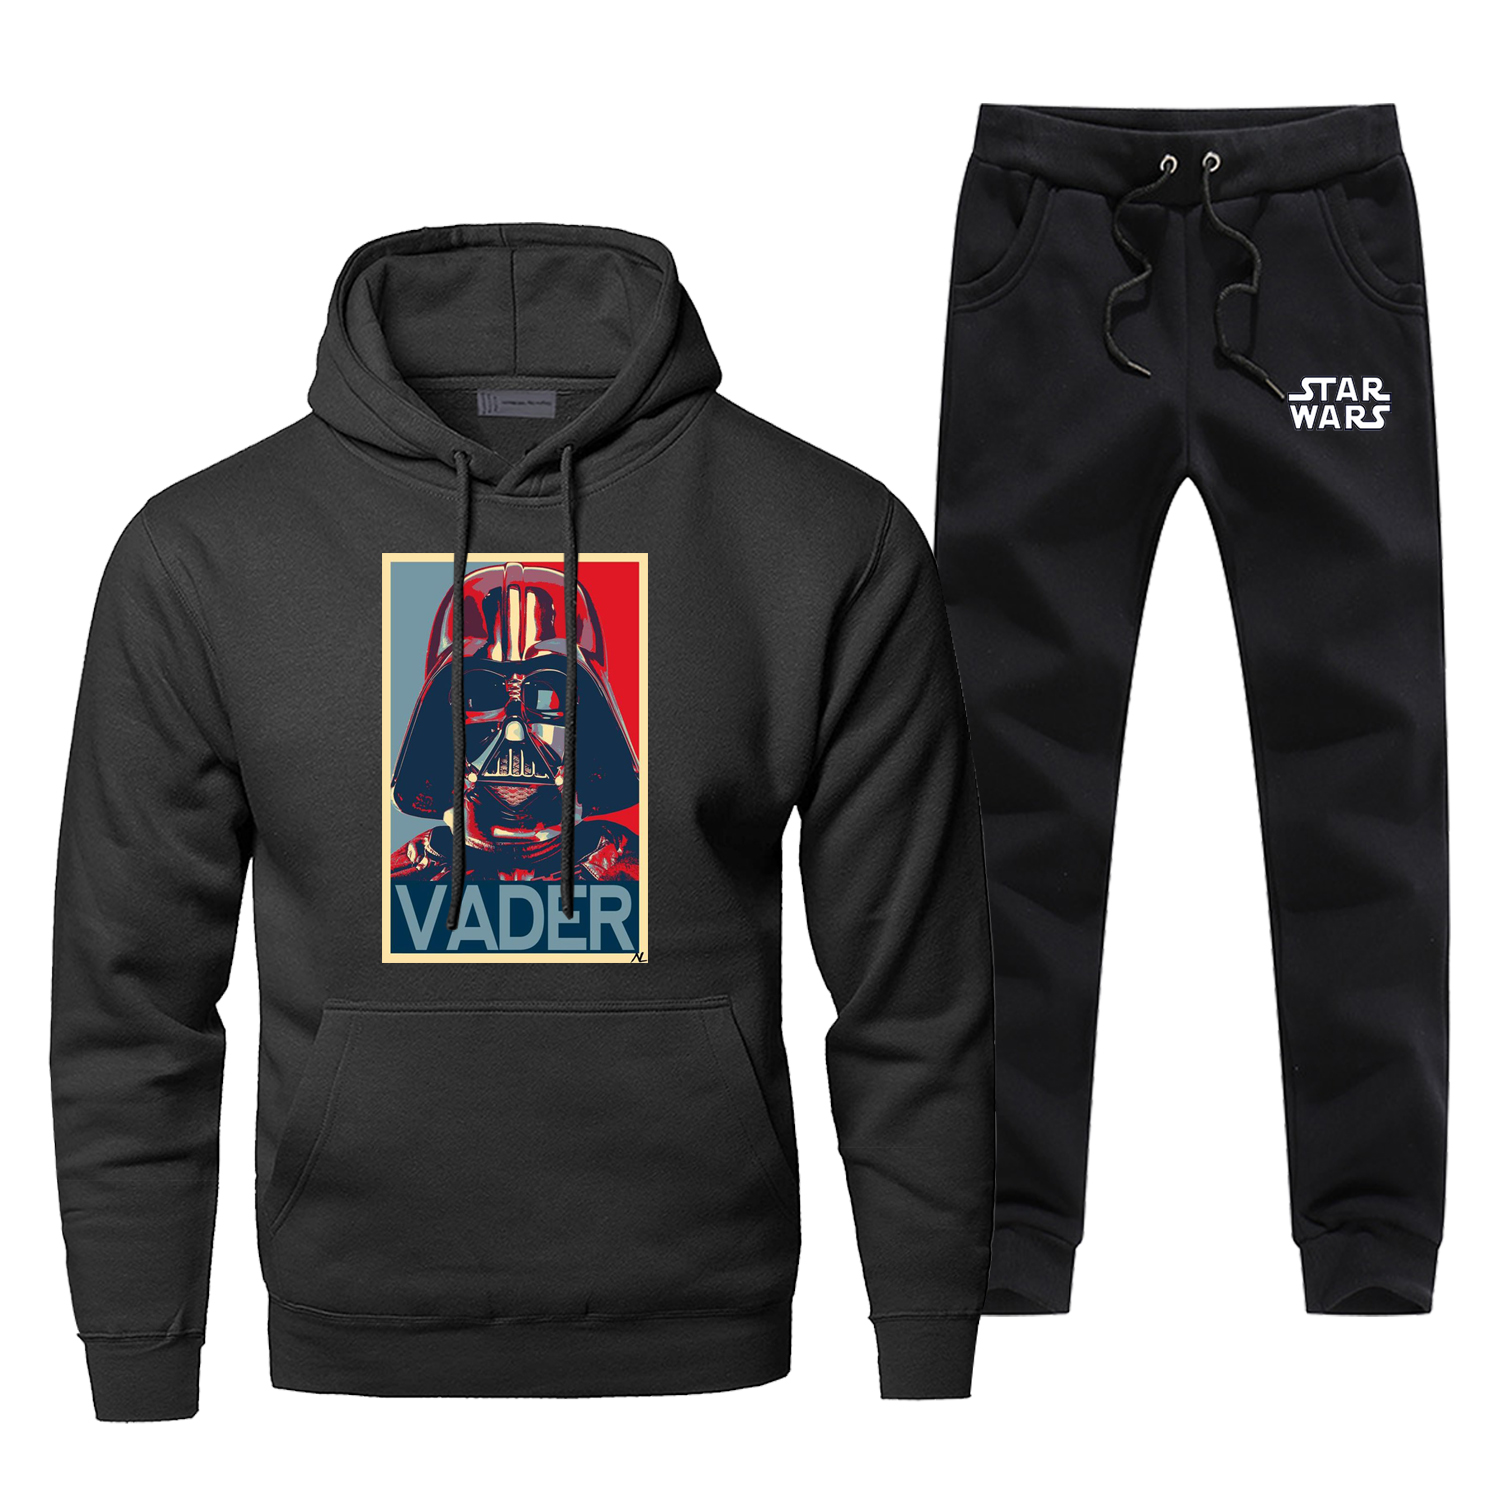 Darth Vader Star Wars Hoodies Pants Set Men Sets Hoody Suit Tops Pant Sweatshirt Selfie Stormtrooper Pullover 2 PCS Tracksuit